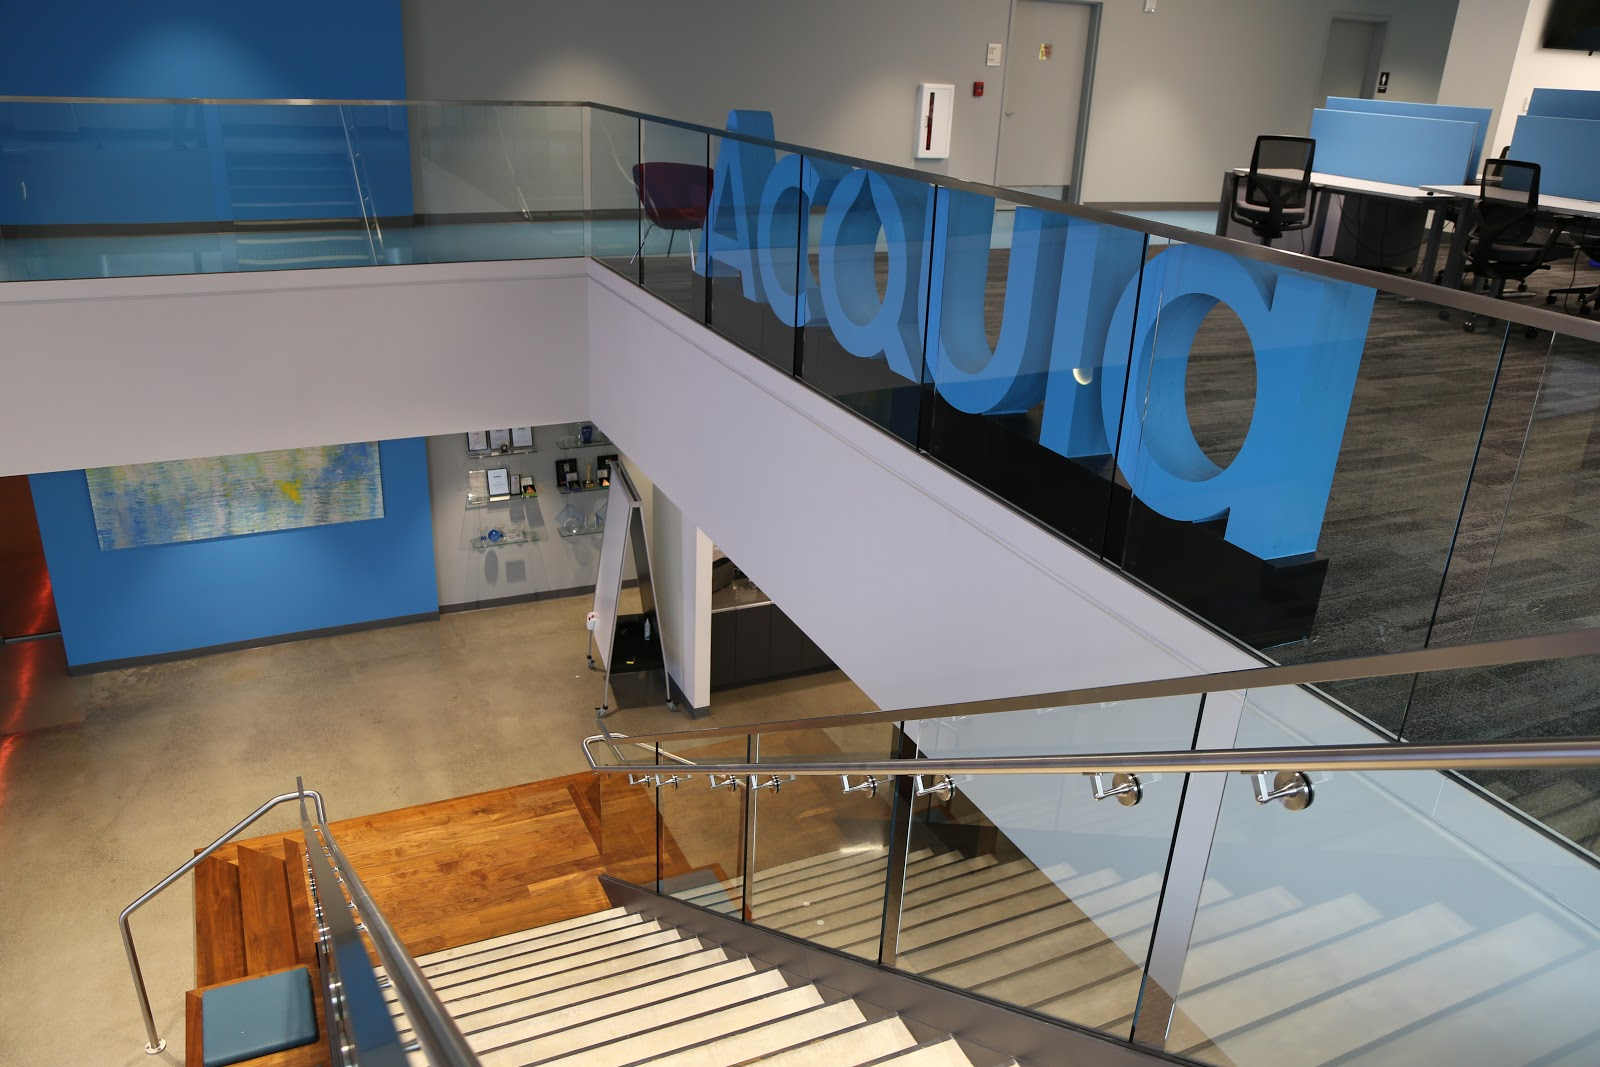 Acquia's office with its logo against a glass railing